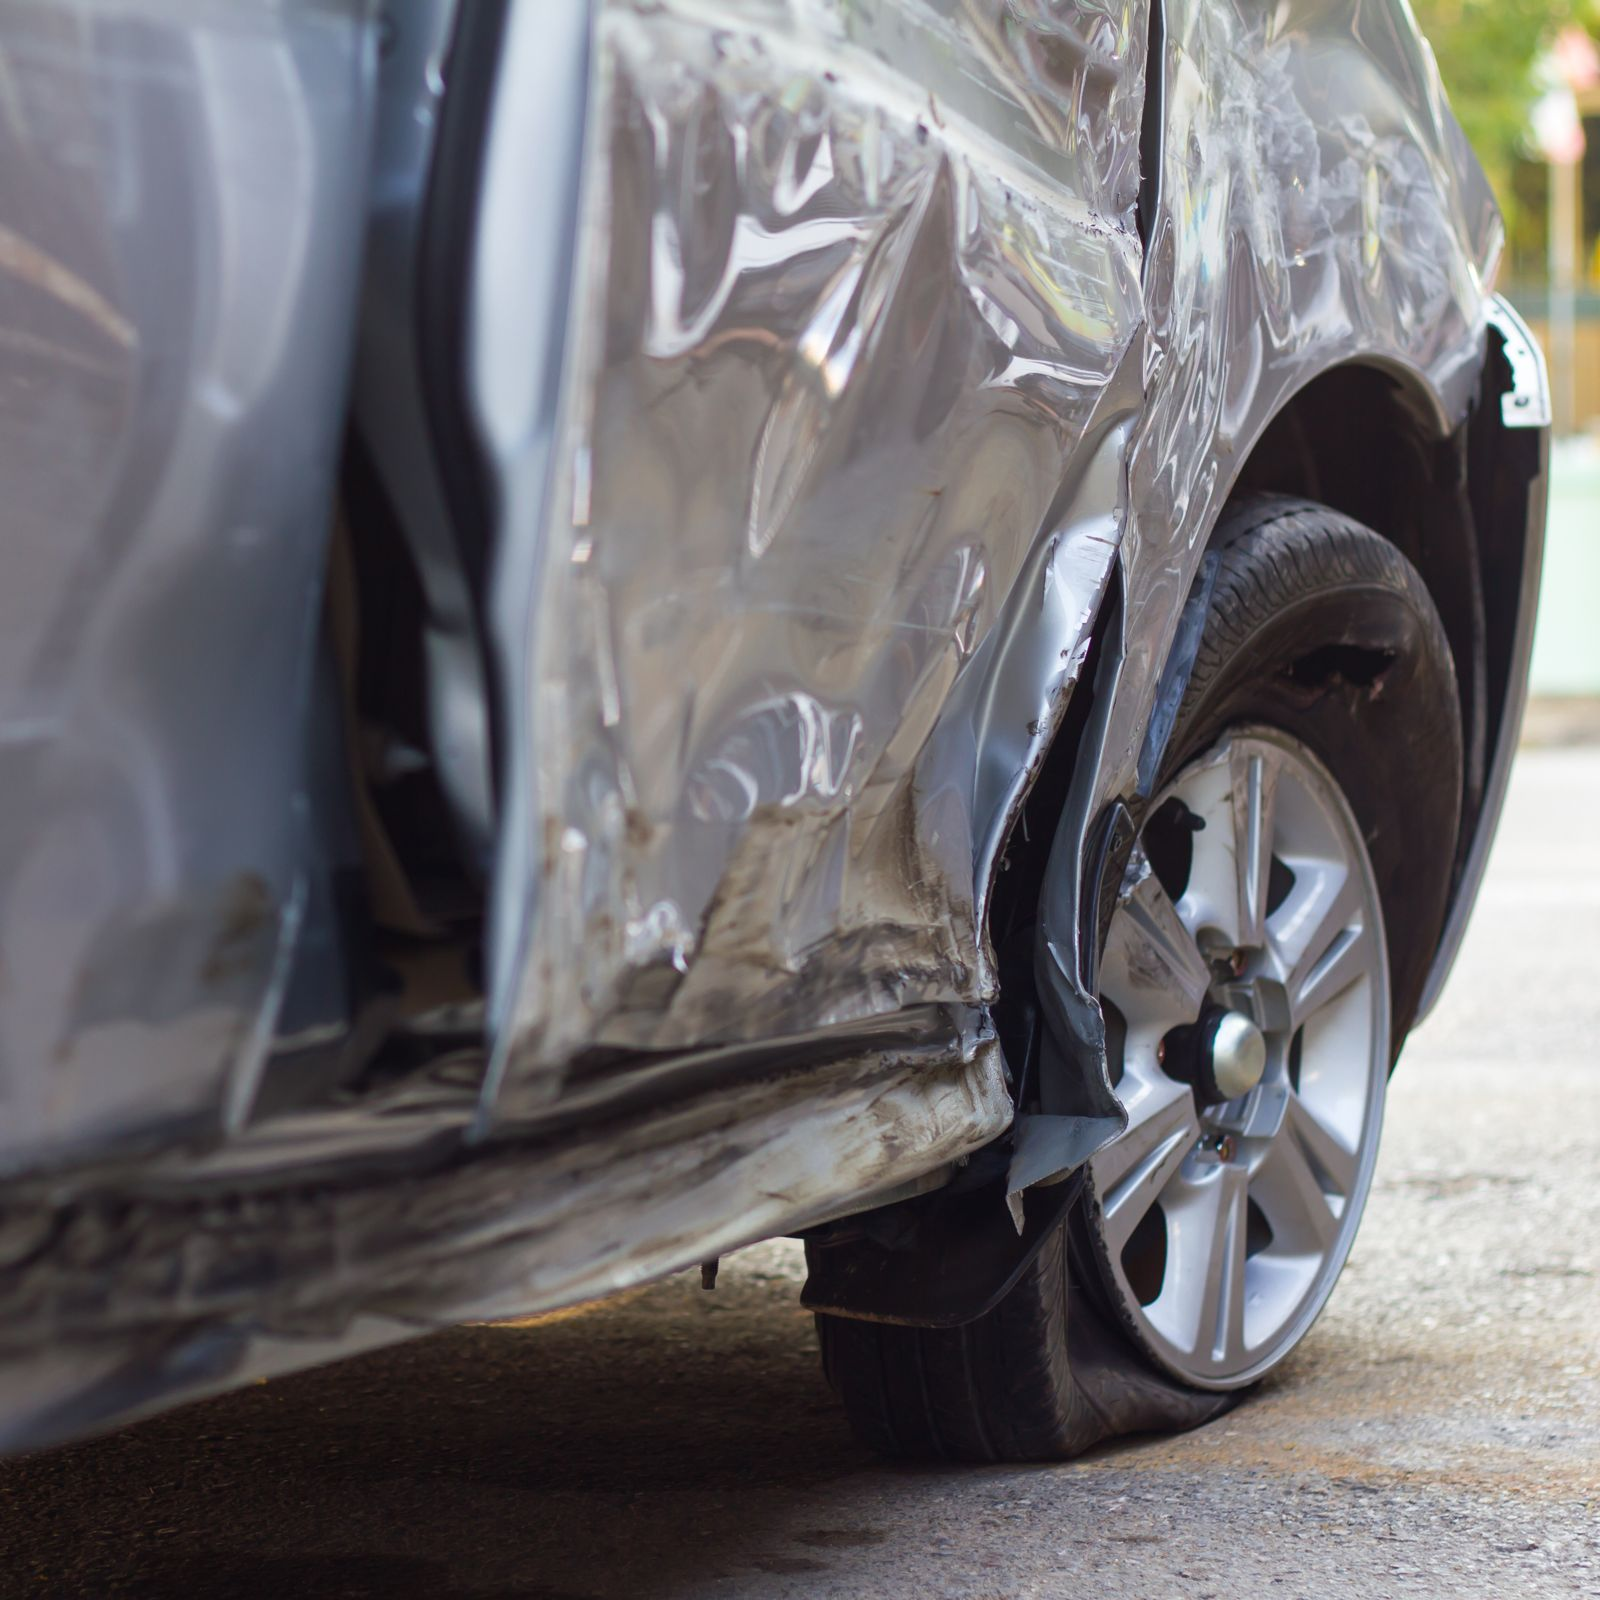 Tire blowout causes car accident and damage.